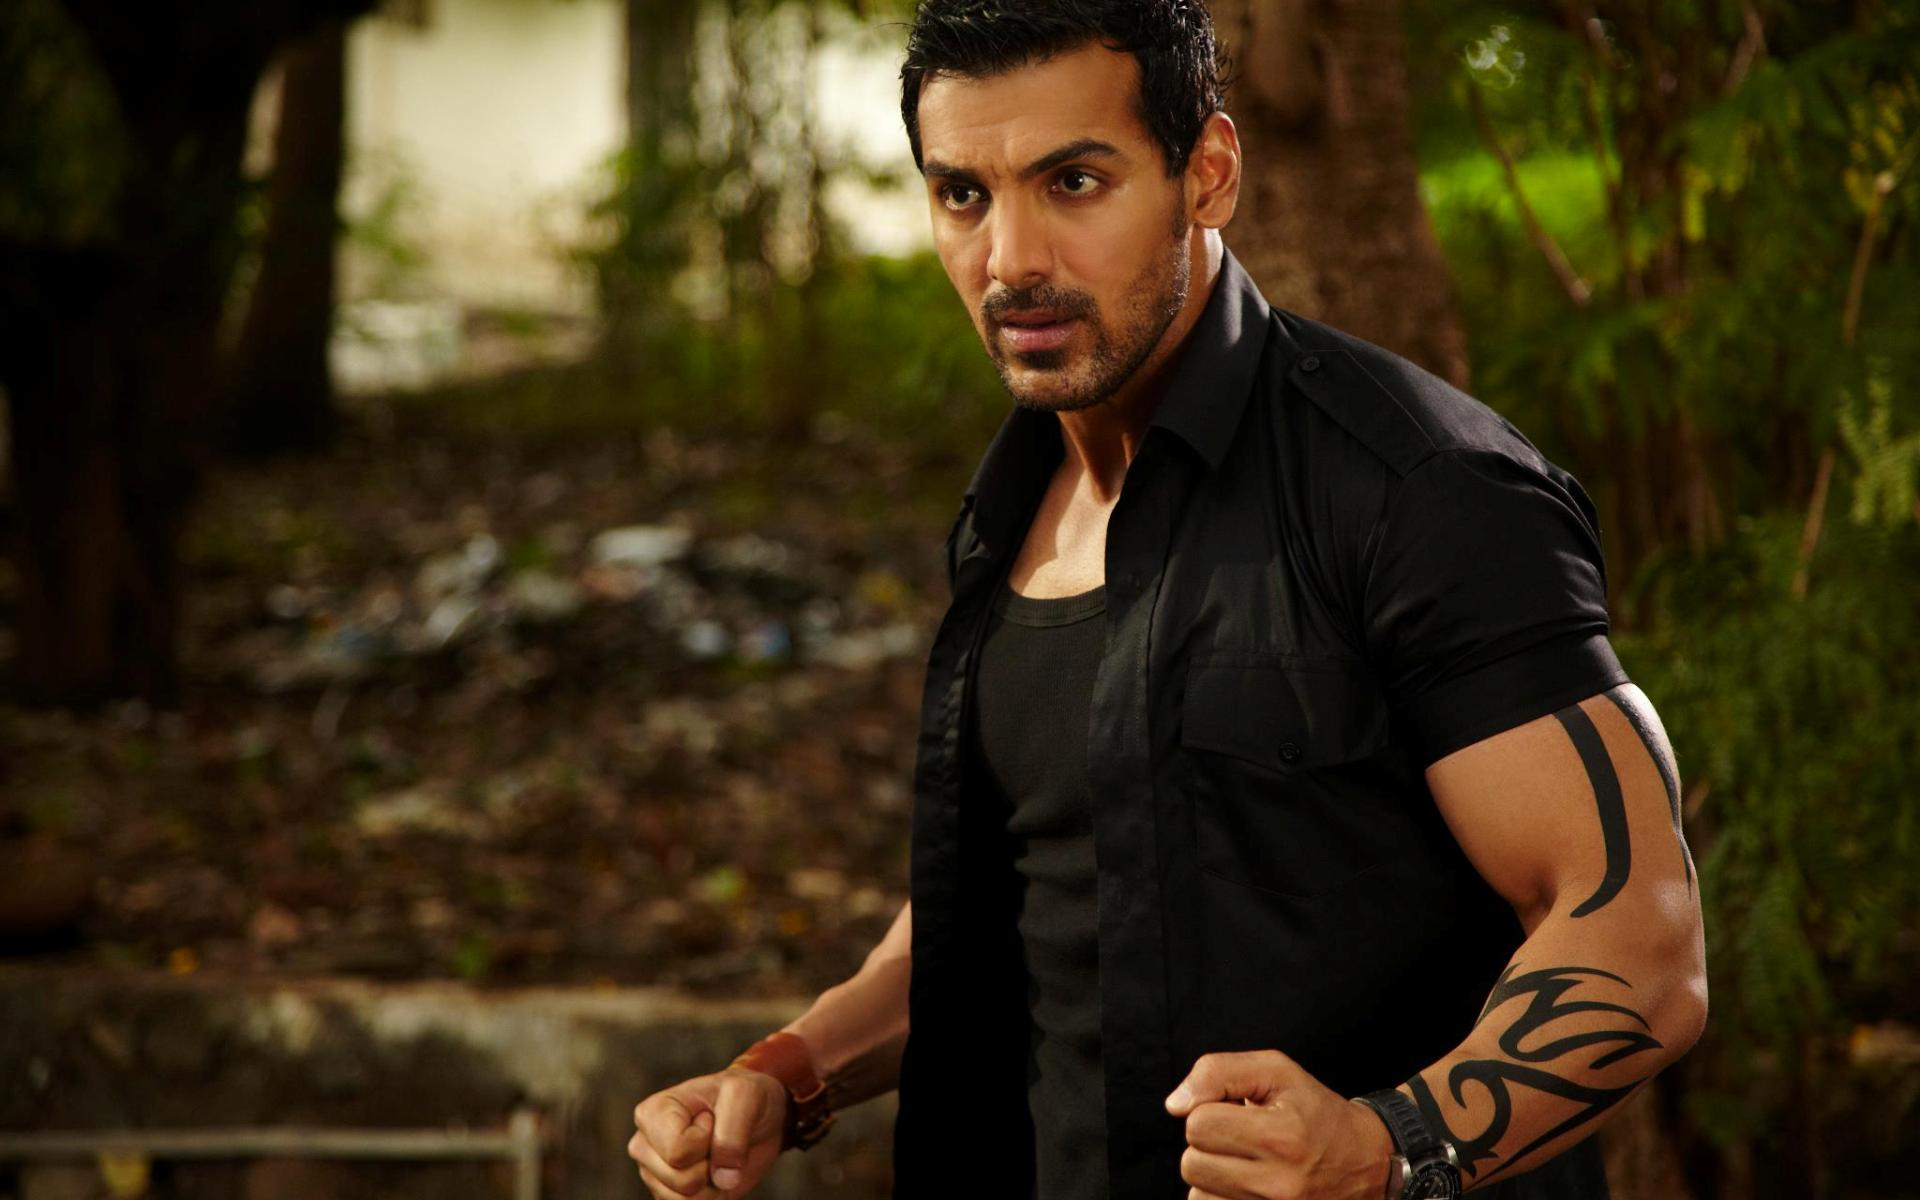 John Abraham Body In Force Hd Wallpapers | Search Results ...